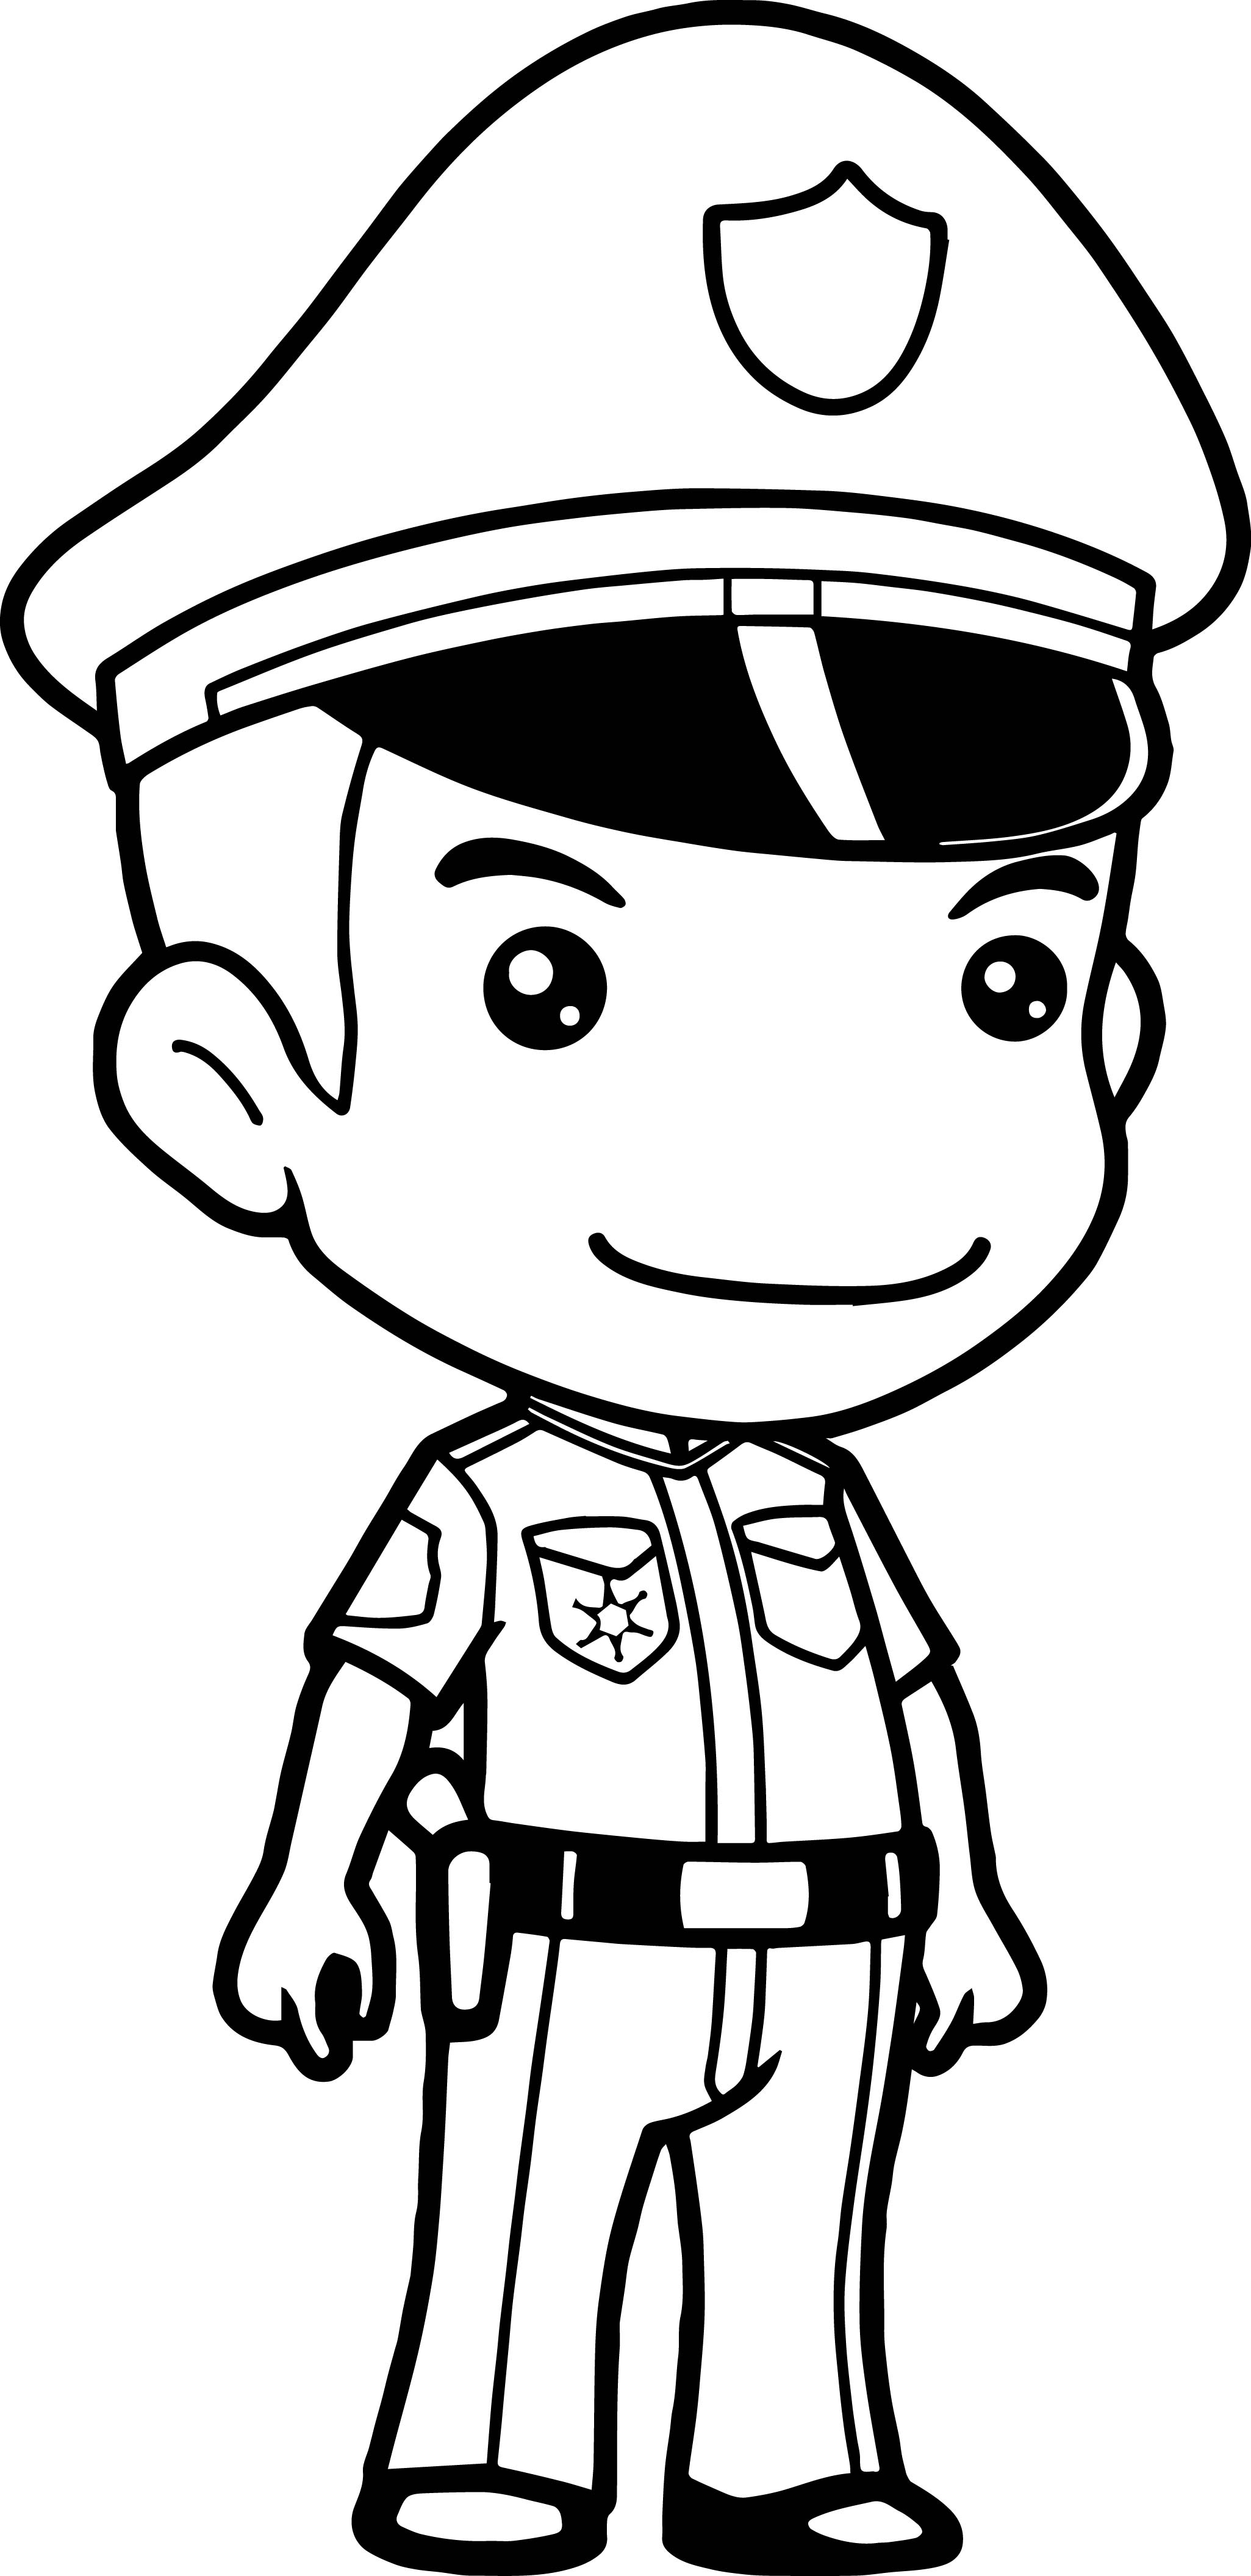 2051x4222 Police Officer Car Control Coloring Pages Policemanrresting